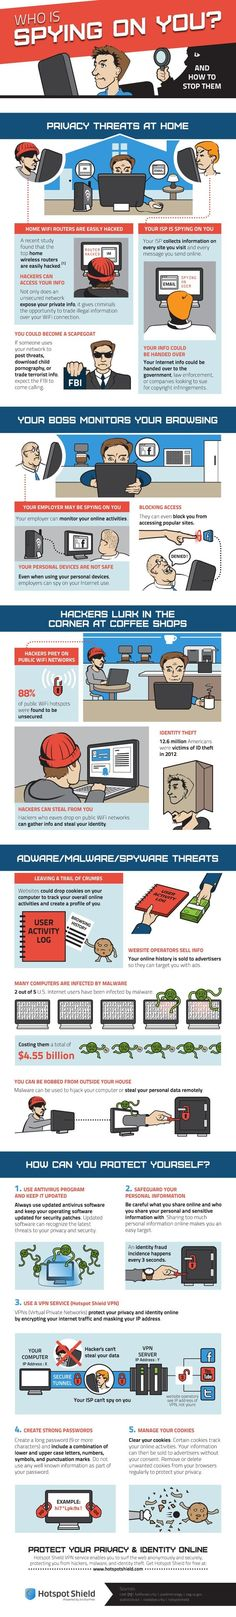 Top 10 Ways To Protect Yourself On Public Wi-Fi | Public Wi-Fi Security Guide